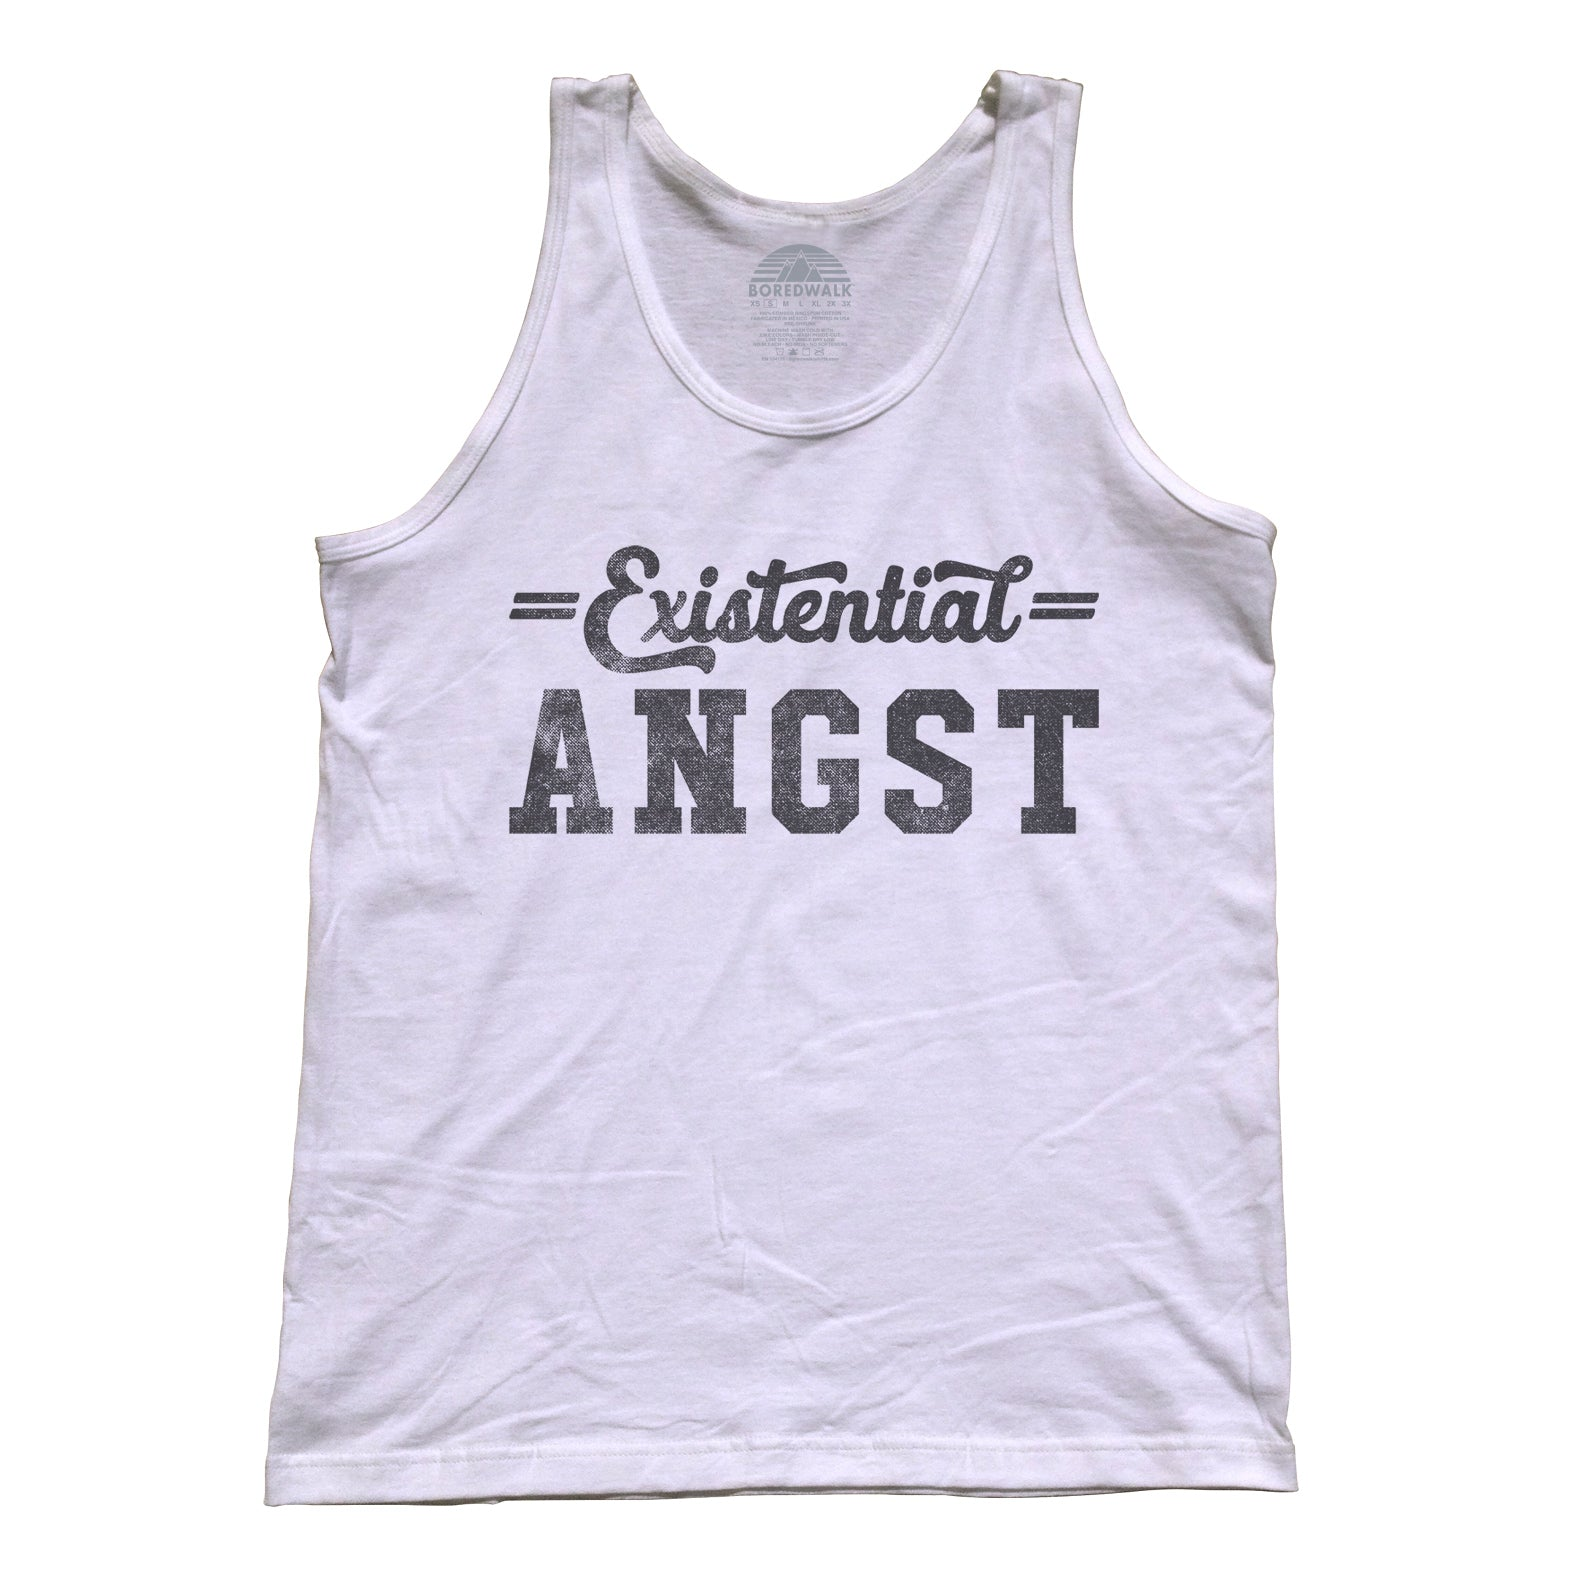 Unisex Existential Angst Tank Top - Funny Existentialism Shirt